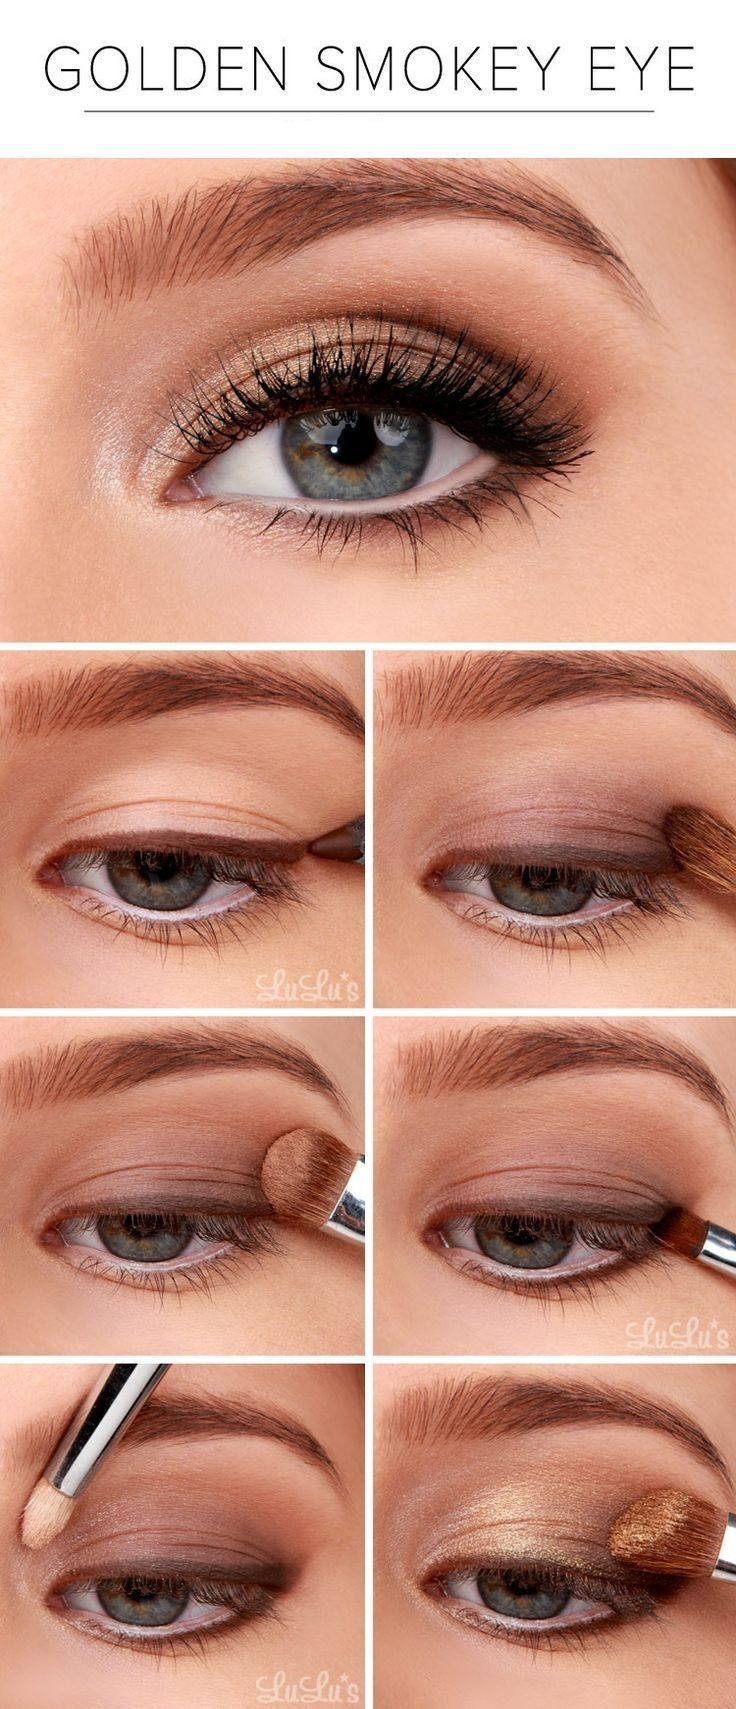 "Golden Smokey Eyes "" 10 eye makeup ideas (9) """